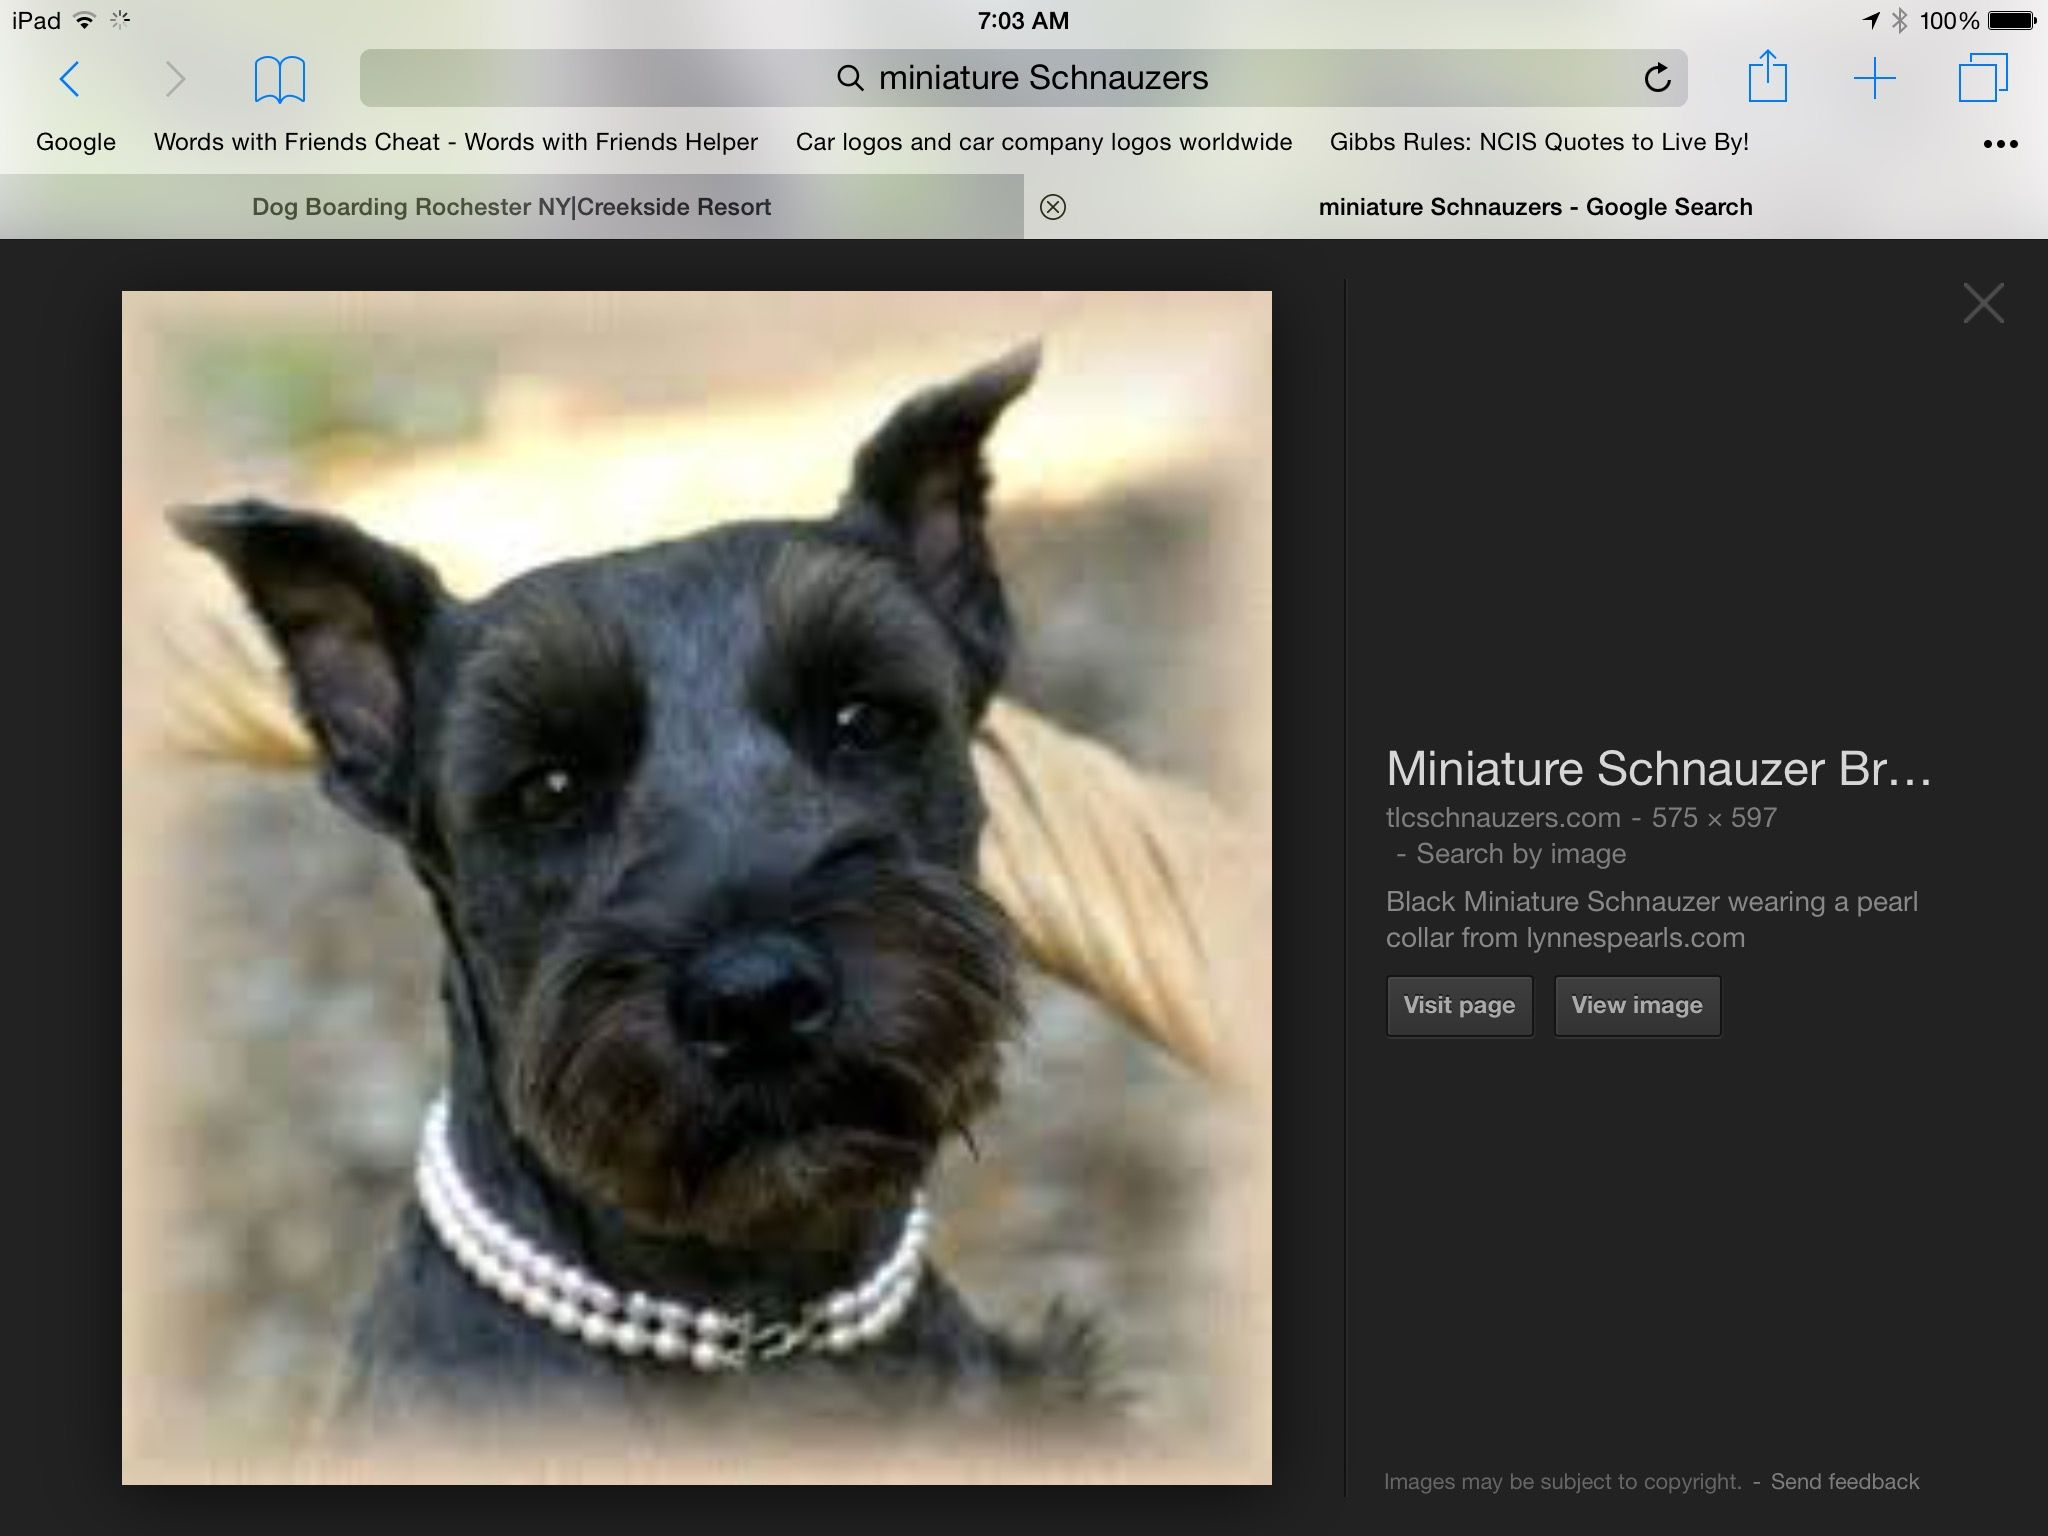 Pin By Linda Valentine On Miniature Schnauzer Dog Boarding Words With Friends Miniature Schnauzer